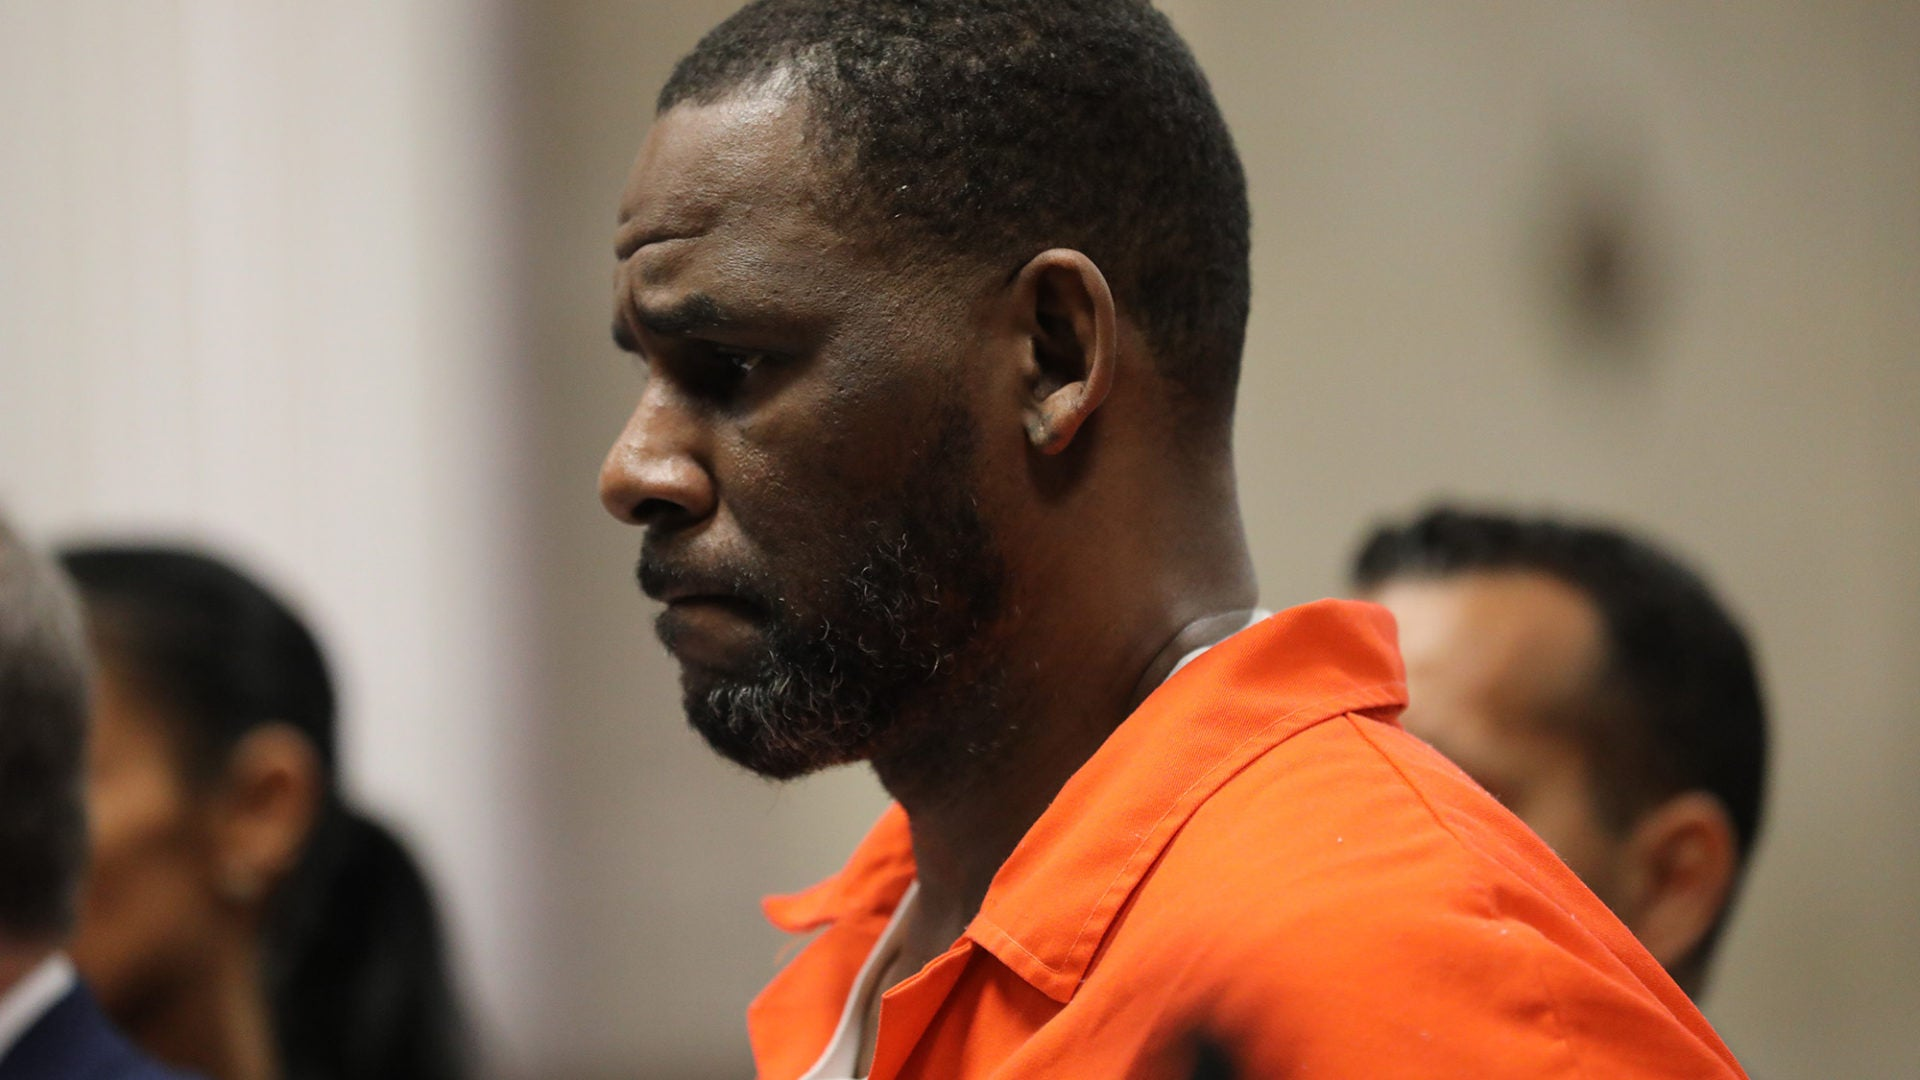 R. Kelly Charged With Bribing Official To Obtain A Fake ID To Marry Aaliyah